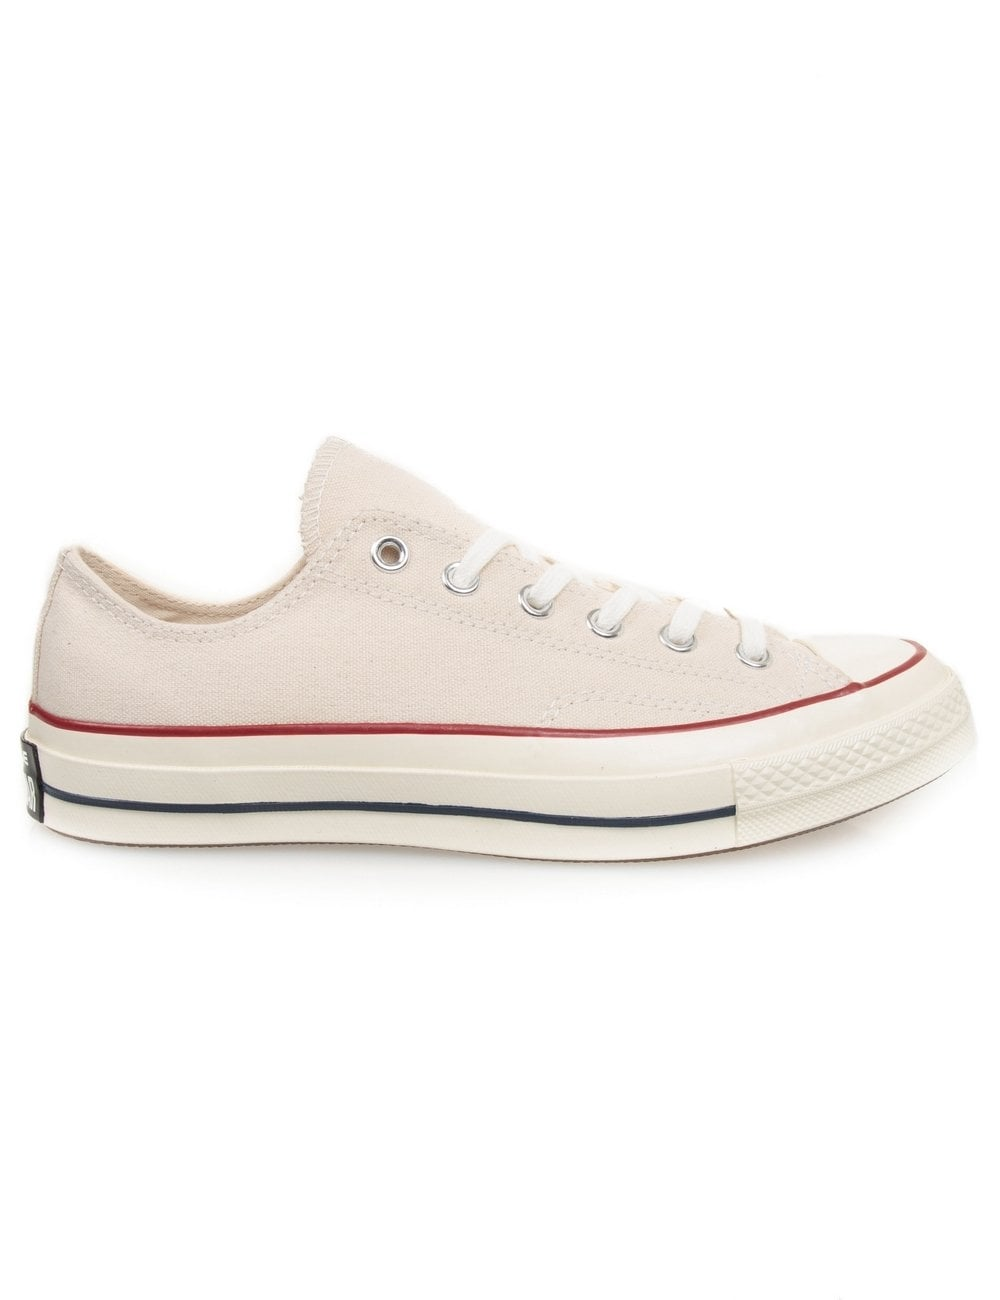 9818c229f2022d Converse Chuck Taylor 70s Ox Shoes - Parchment - Footwear from Fat ...